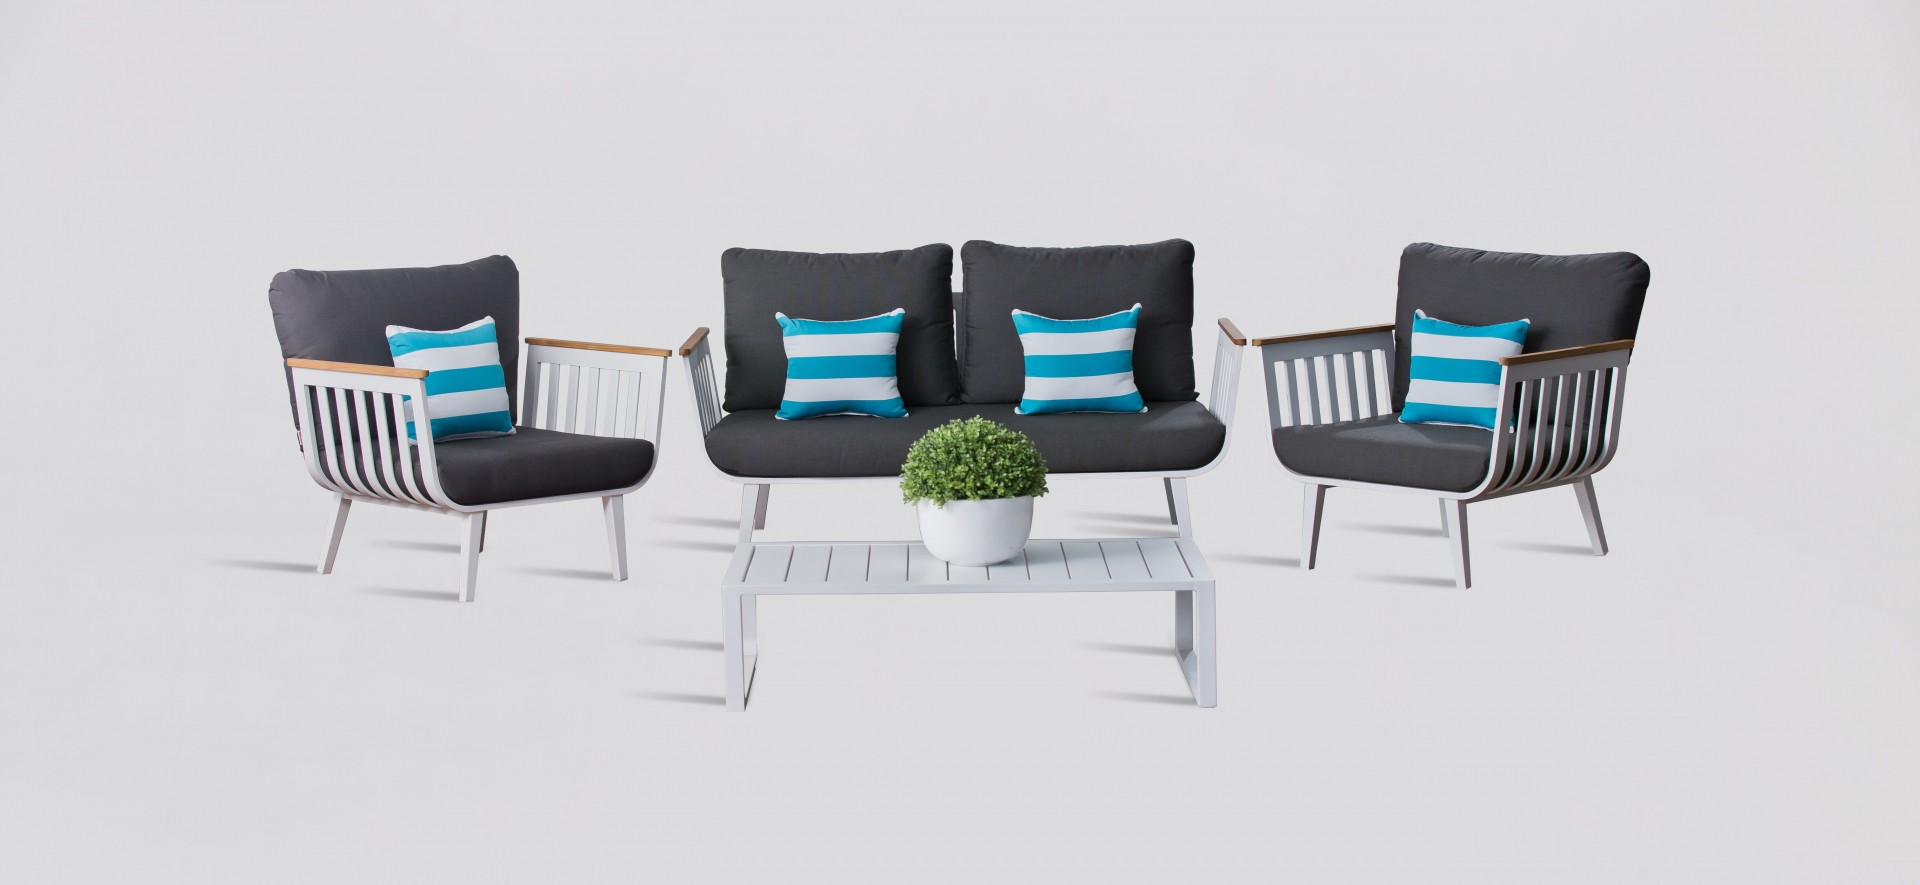 White Four Seat Outdoor Lounge Set - Sweden